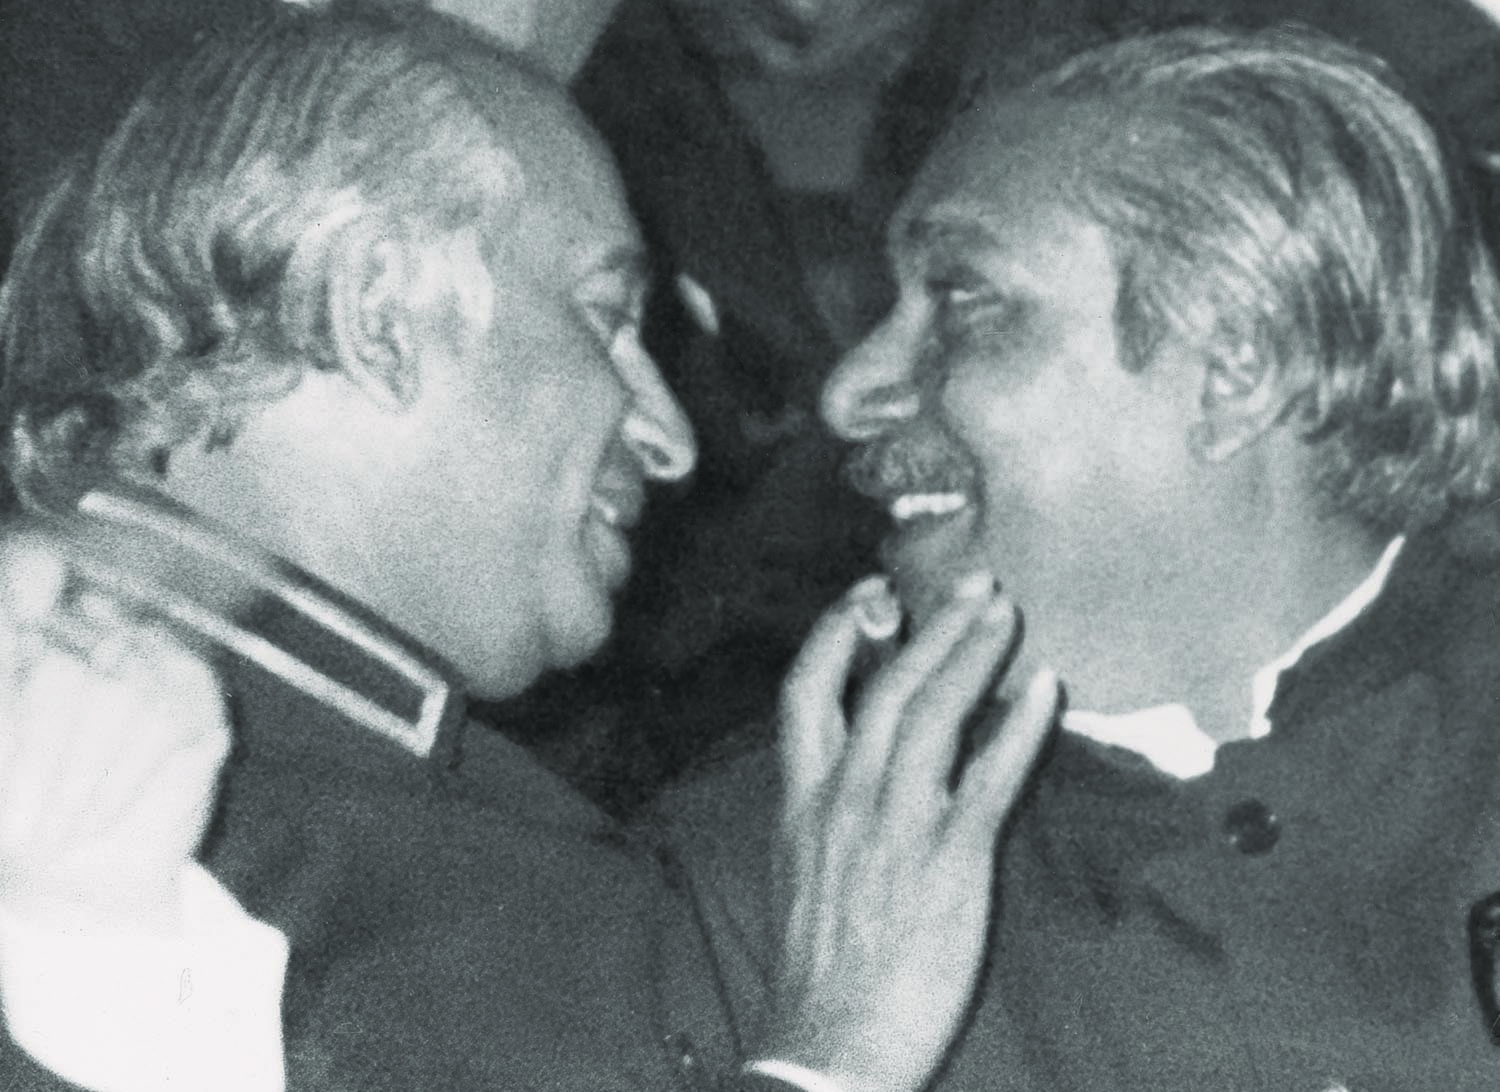 The chemistry between Zulfikar Ali Bhutto (left) and his one-time nemesis Sheikh Mujibur Rahman was worth watching during the proceedings of the Islamic Summit. Even a semblance of it just three years earlier might have led to a history different from what it actually turned out to be. | Photo: Dawn / White Star Archives